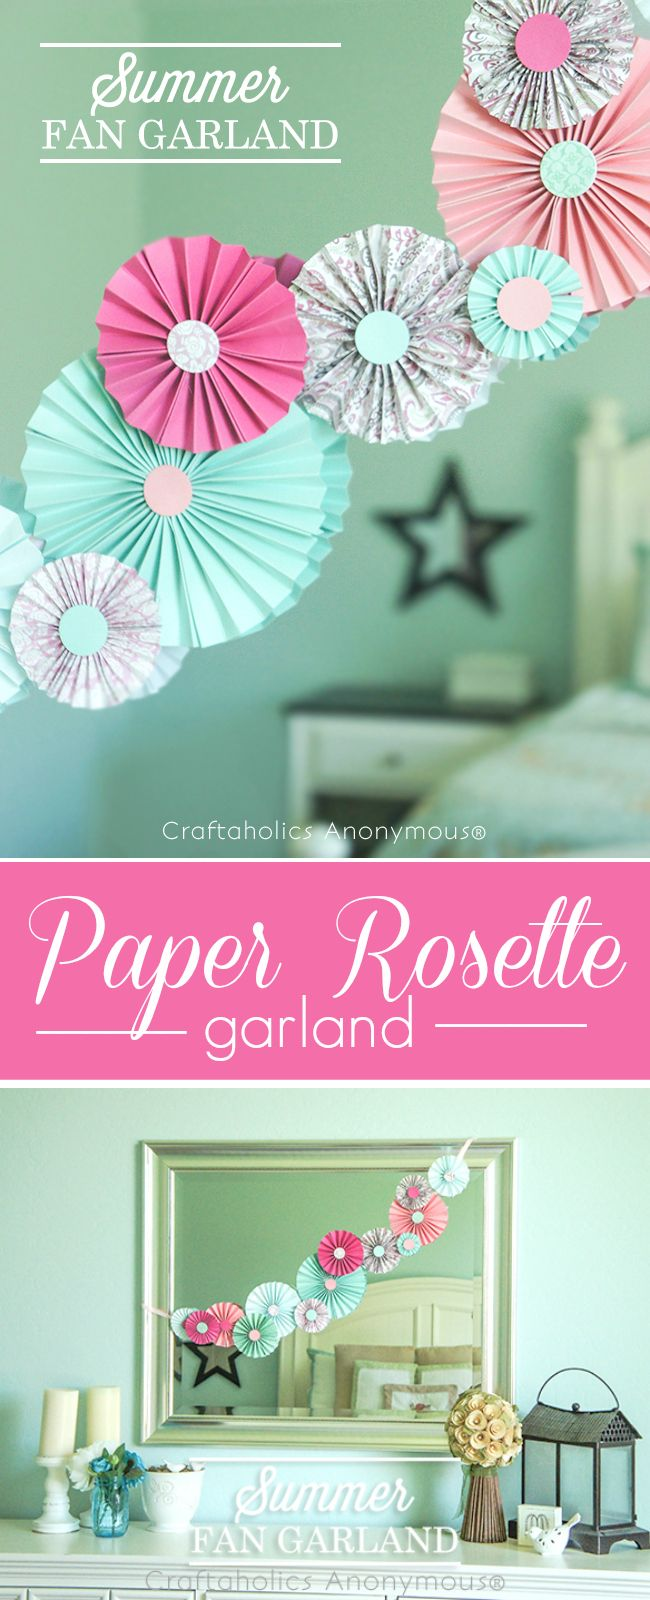 How to make rosettes out of paper - Diy Paper Rosettes Or Fans Tutorial Pretty Colors These Are Great For Parties